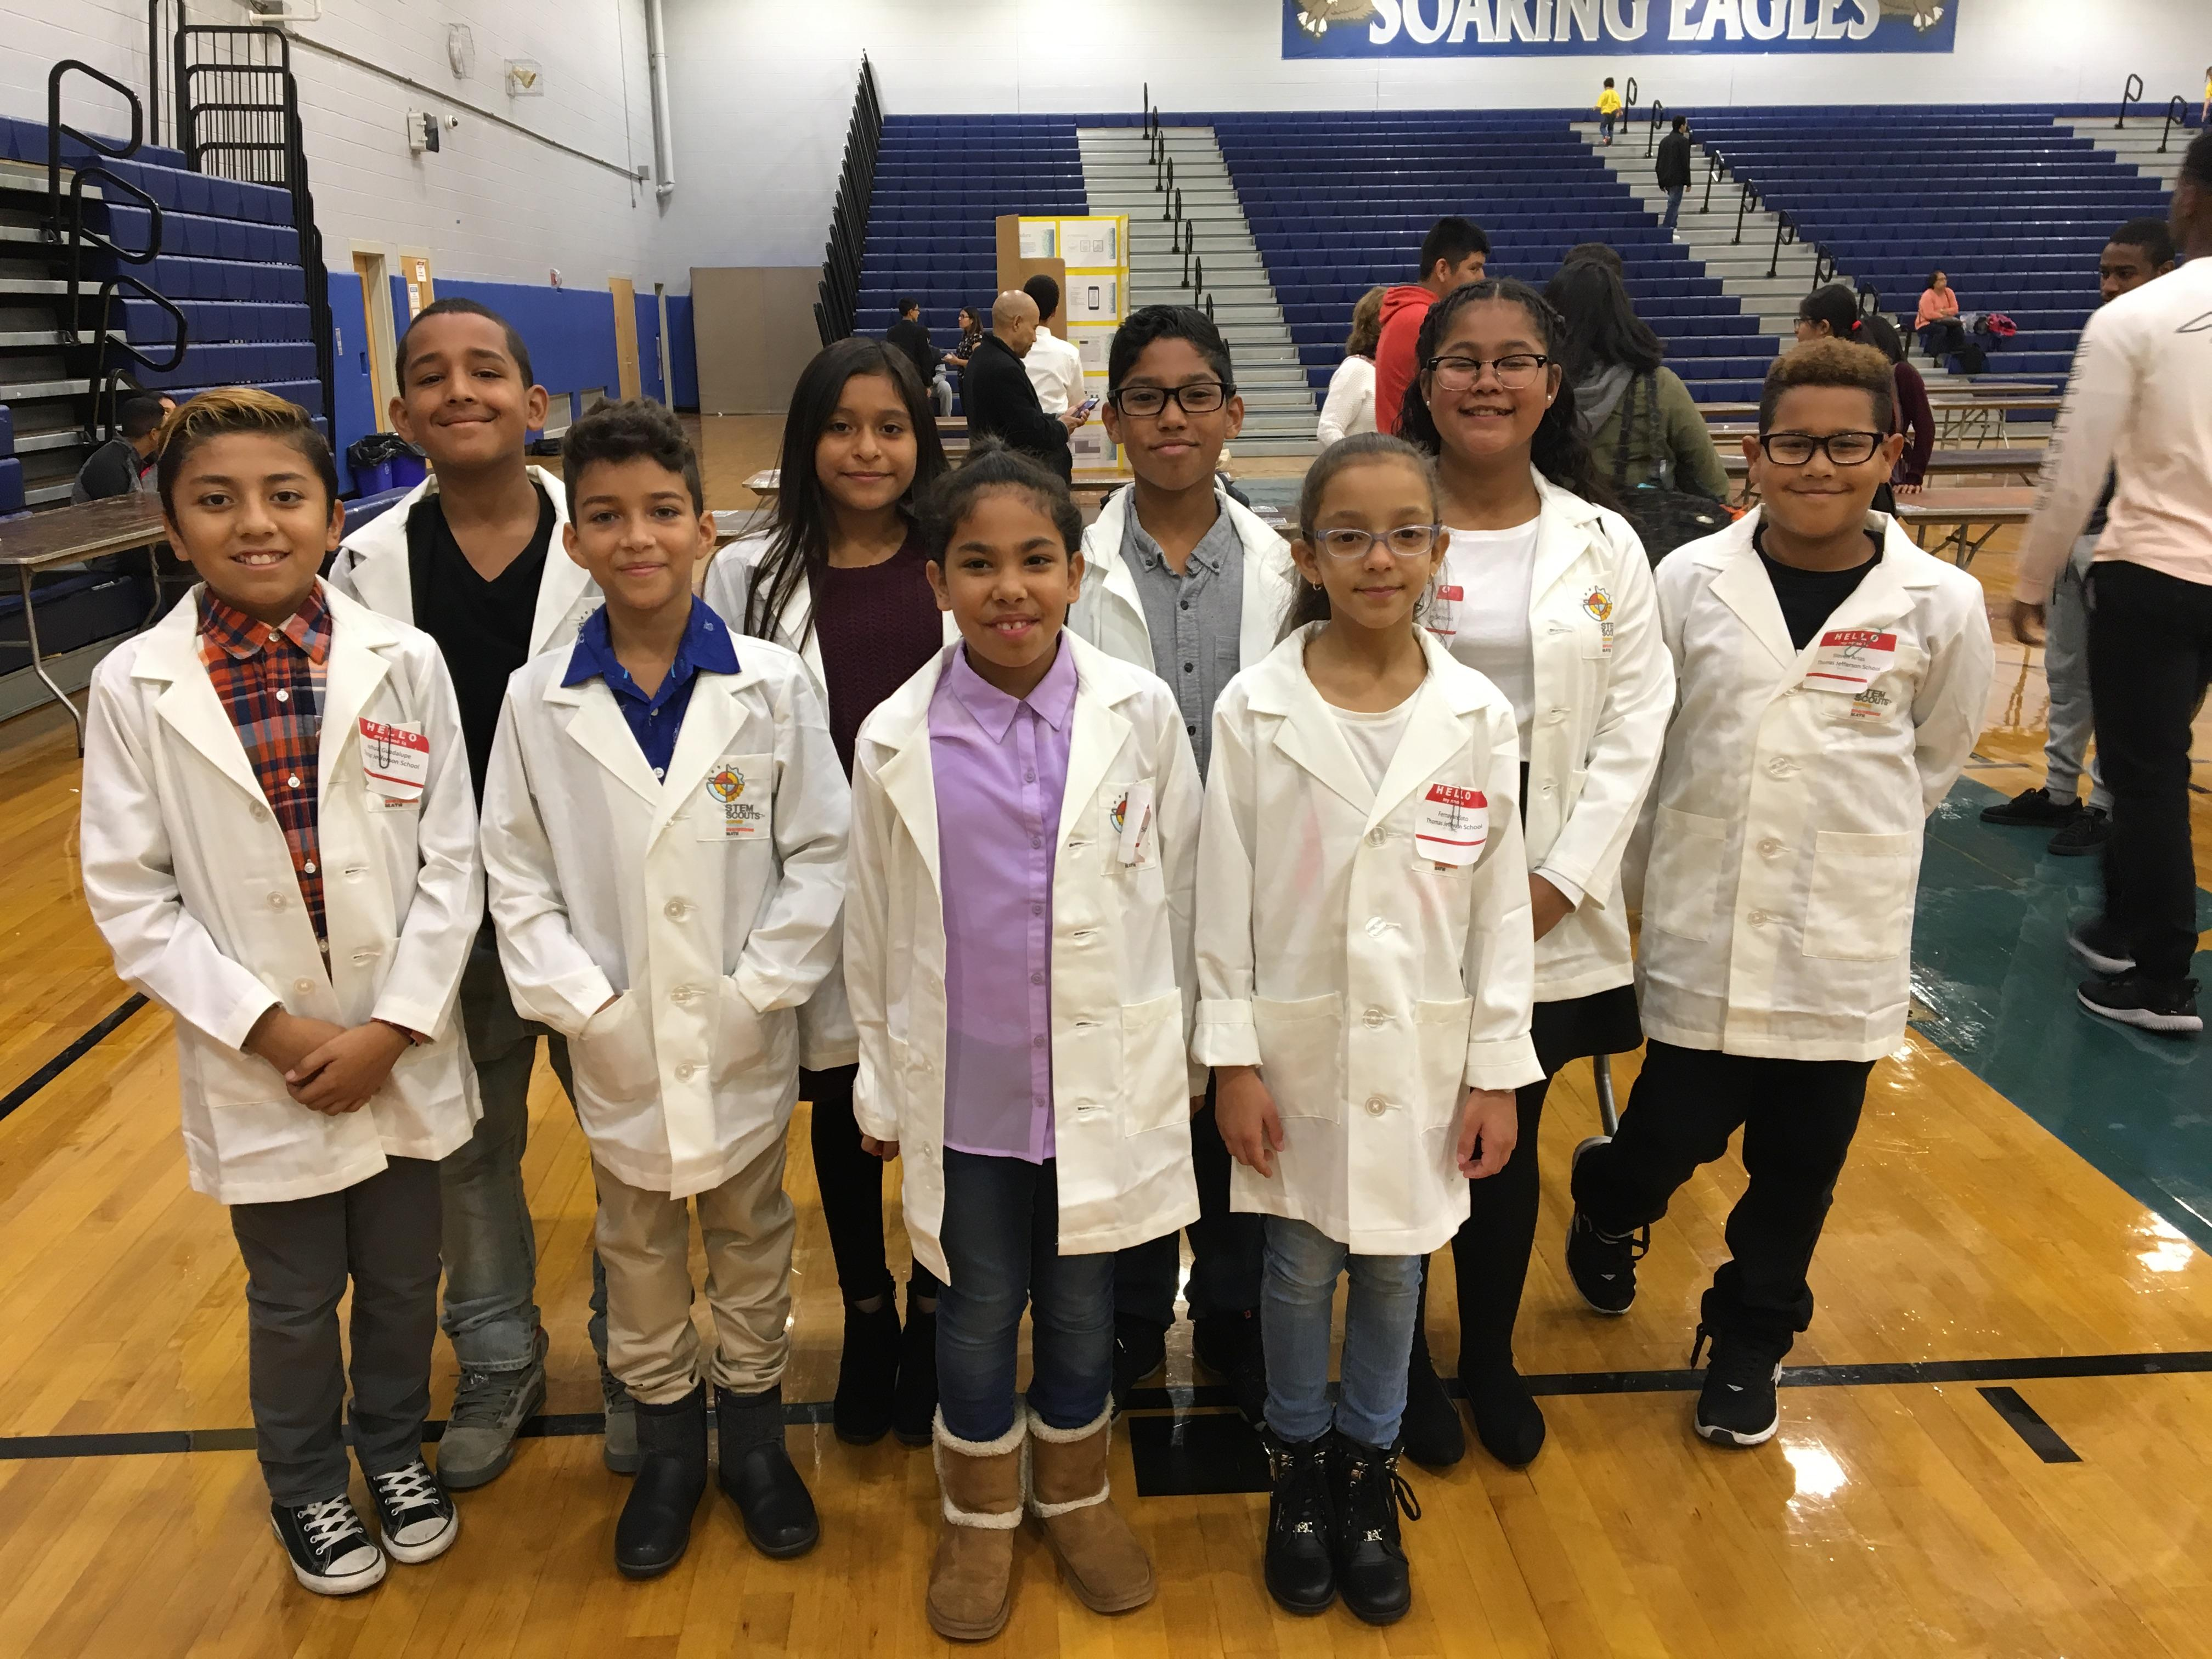 Edison School Science Team